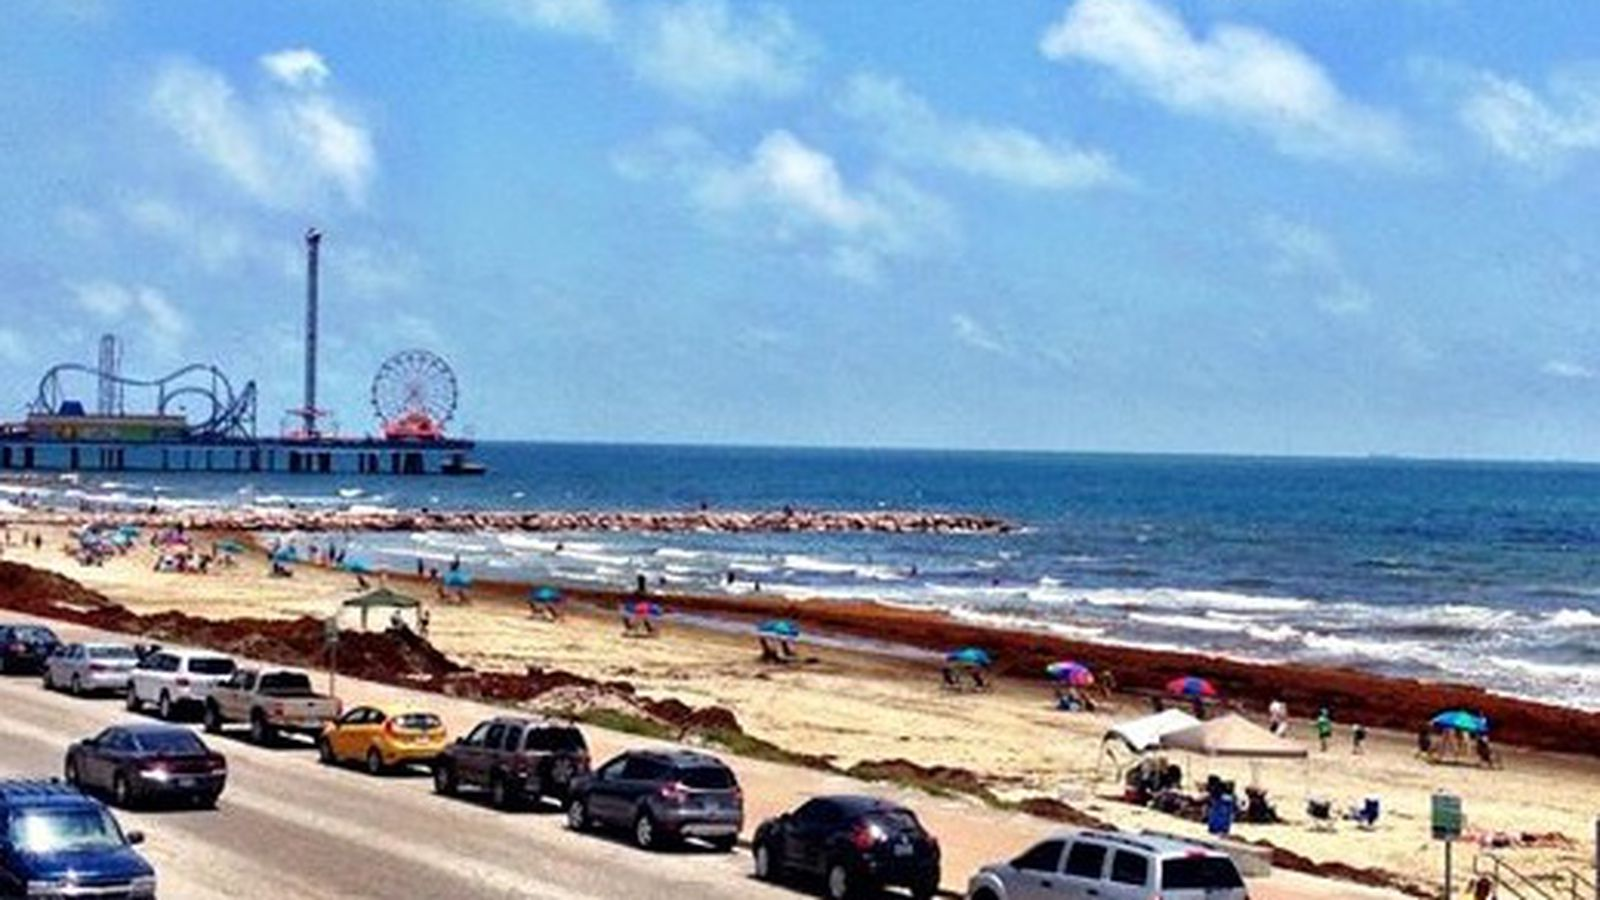 Best places to eat drink in galveston according to you for Places to go fishing in houston